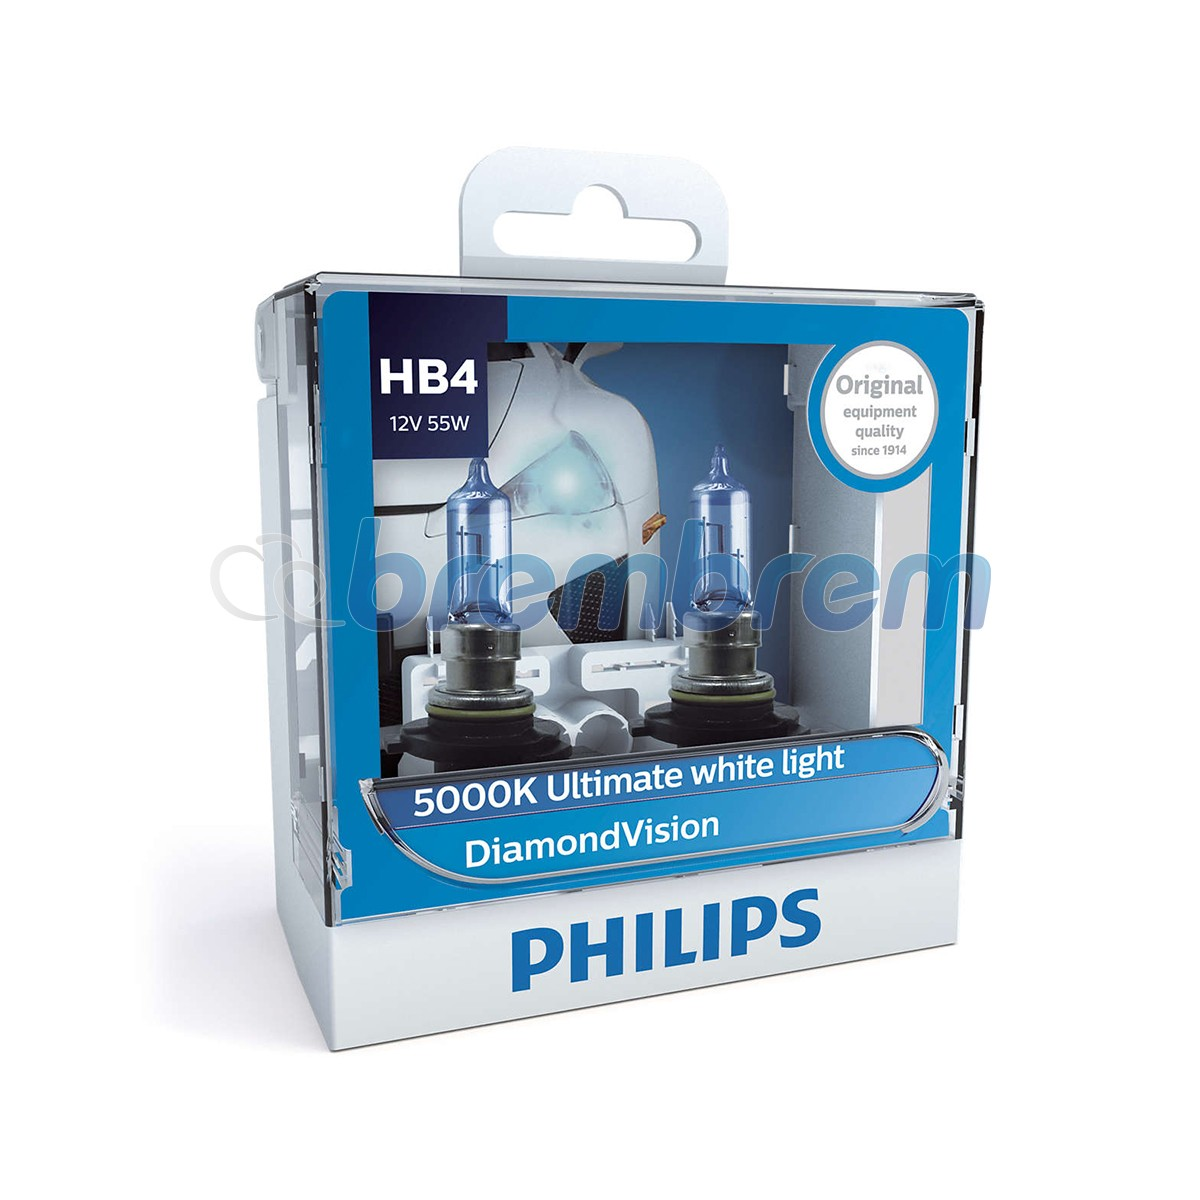 PHILIPS DIAMONDVISION 5000K - HB4 - LAMPU HALOGEN